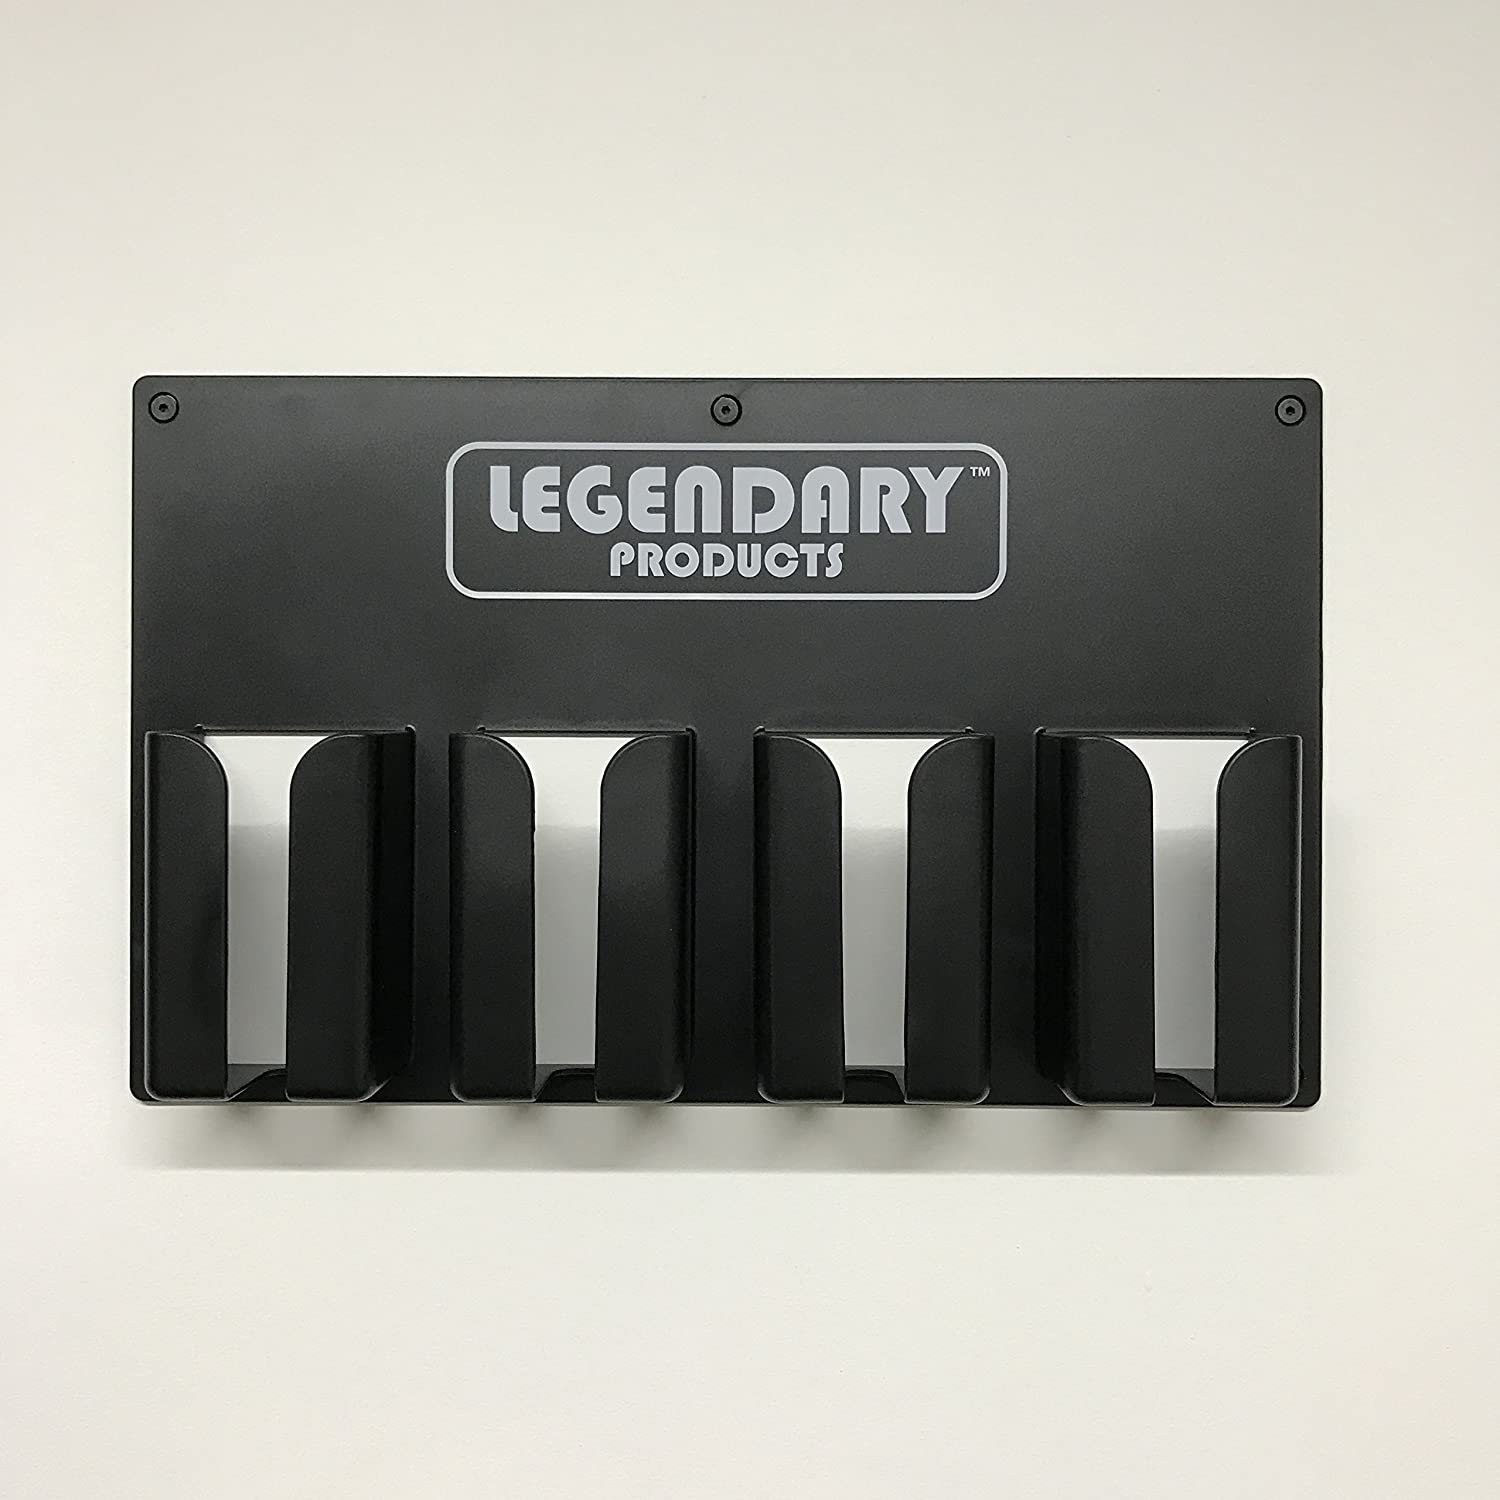 Clipper support Legendary Products